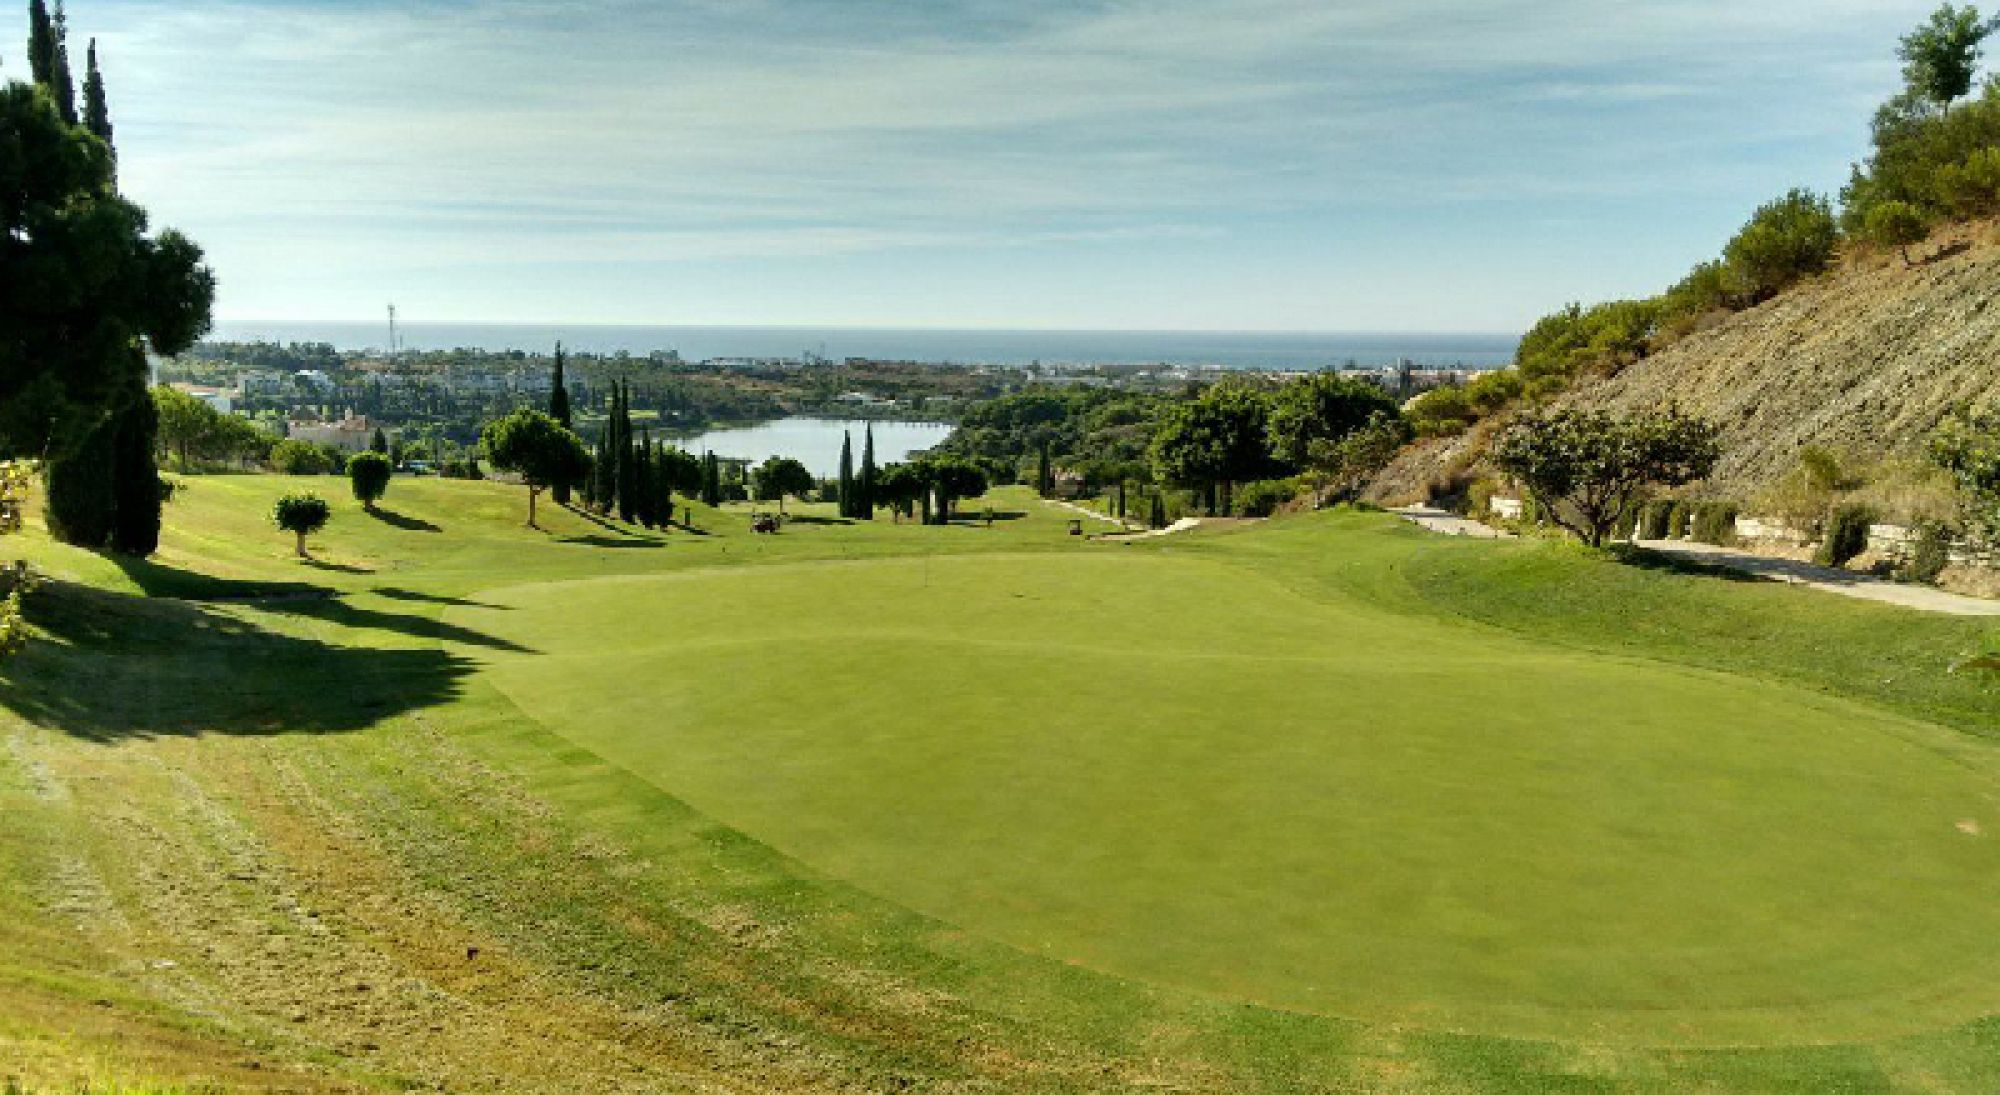 All The Flamingos Course - Villa Padierna's lovely golf course within striking Costa Del Sol.